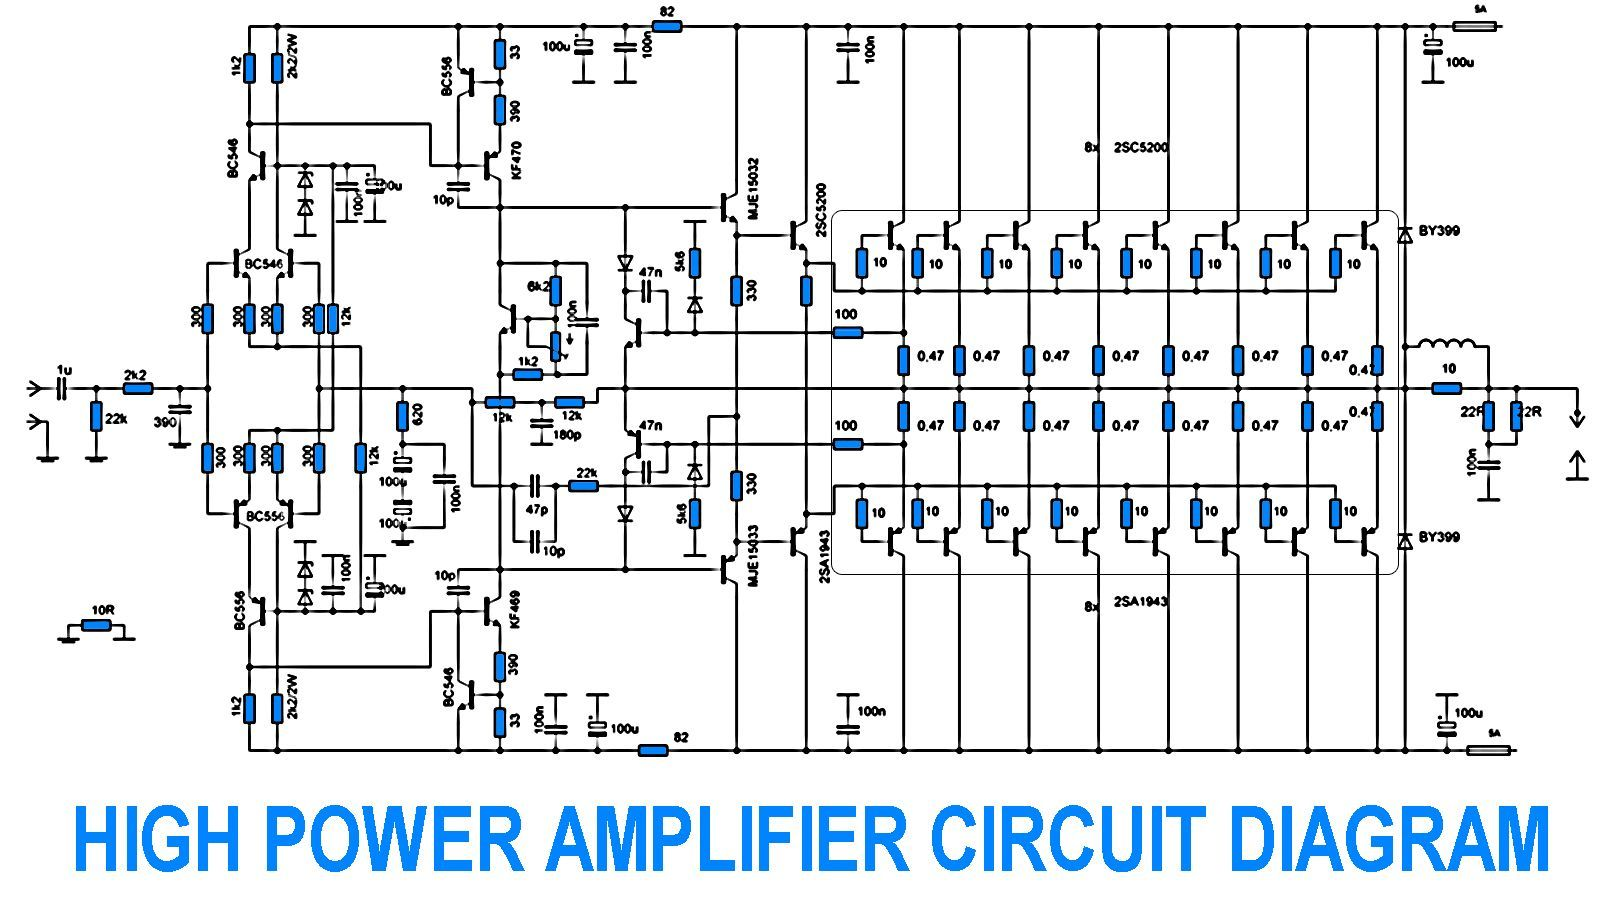 medium resolution of 1000 watts amplifier circuit diagrams